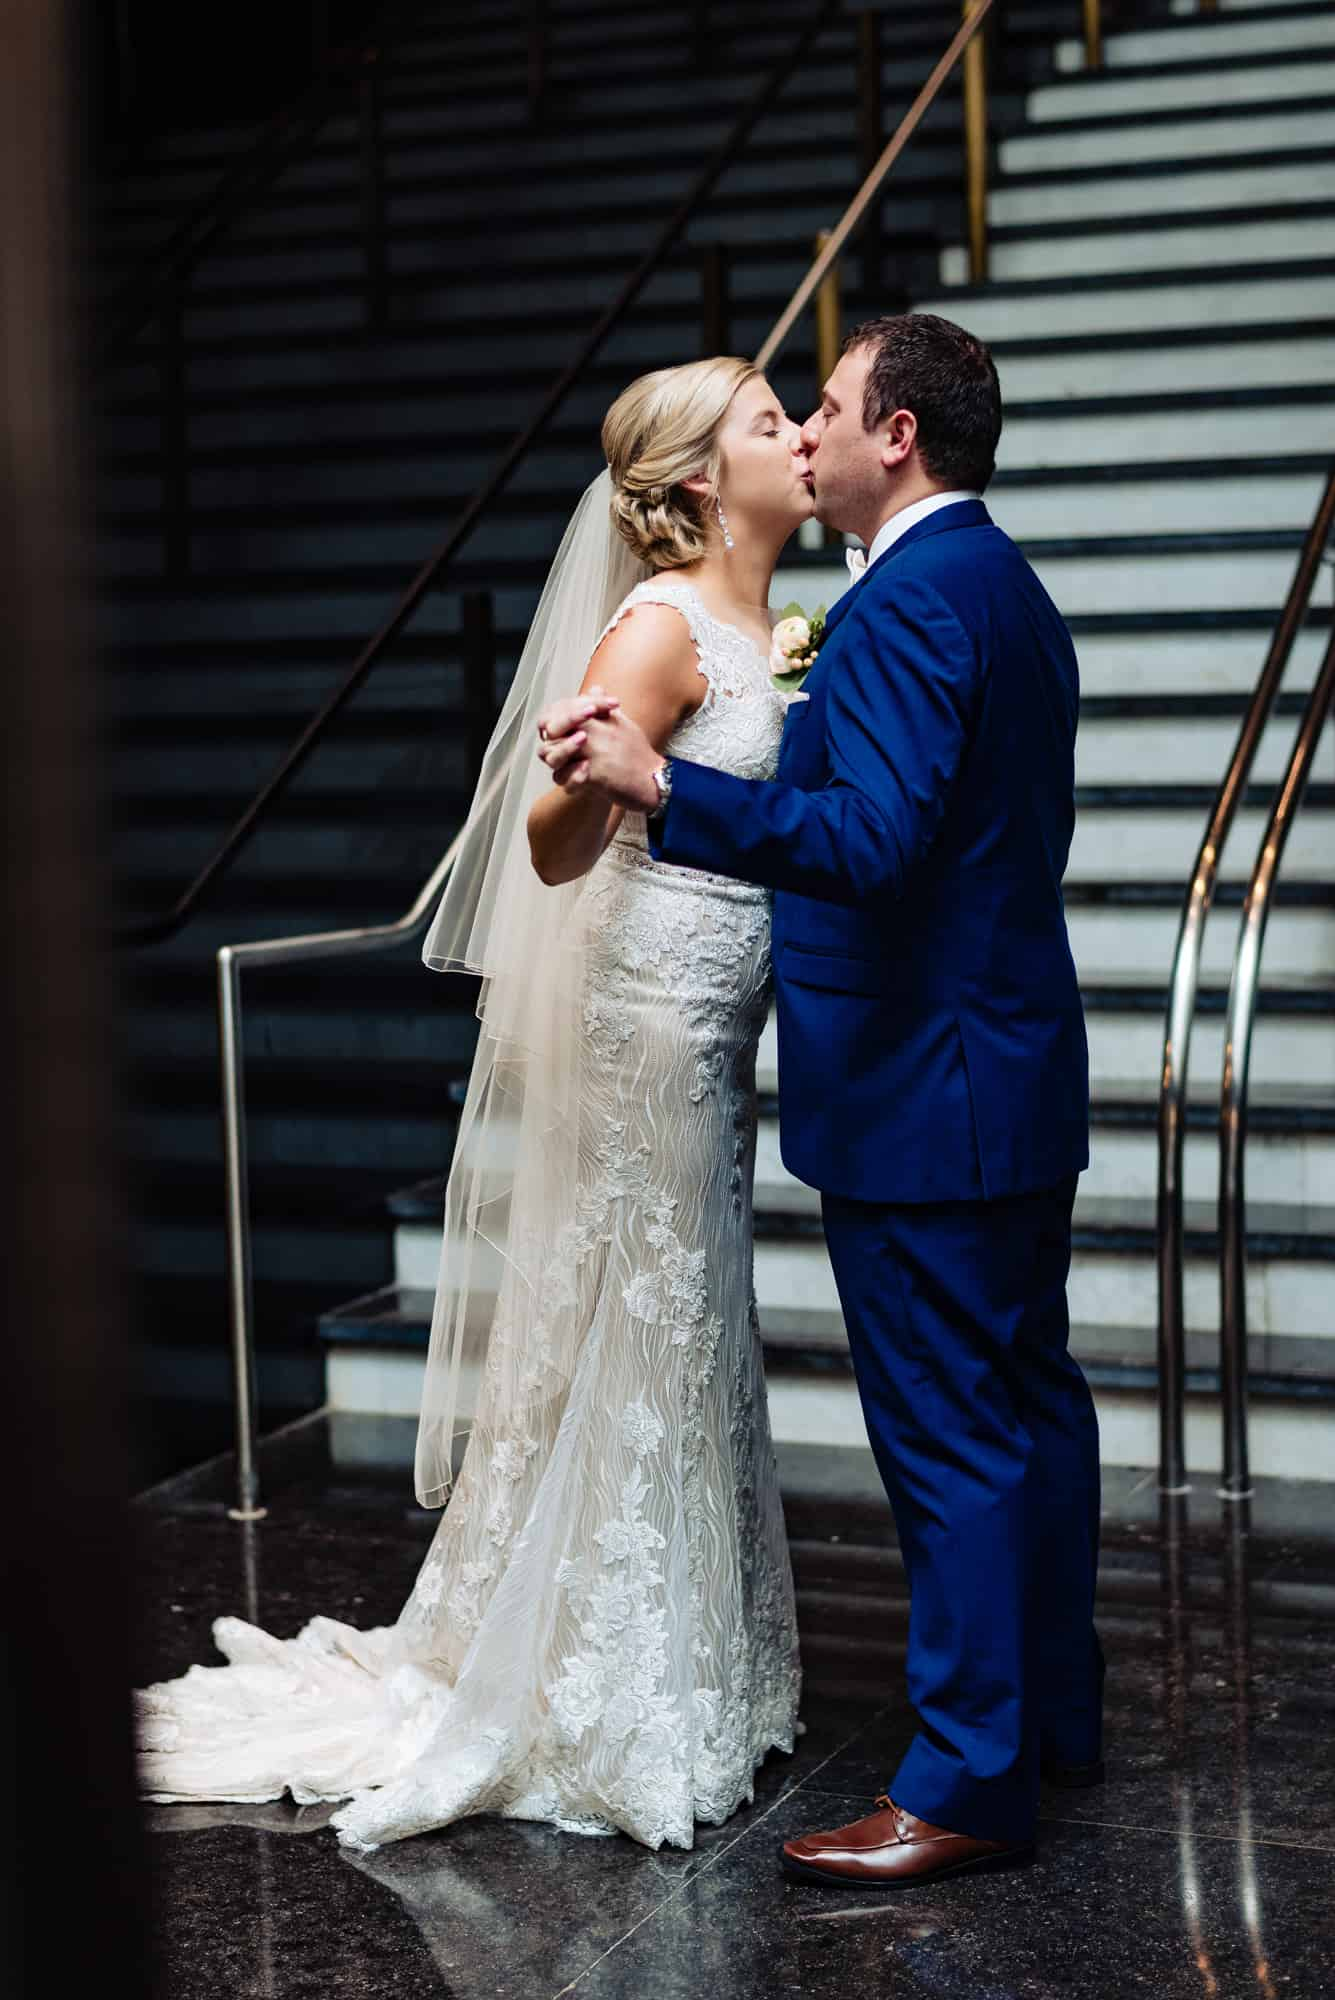 wedding day, bride and groom kissing and holding hands in a staircase